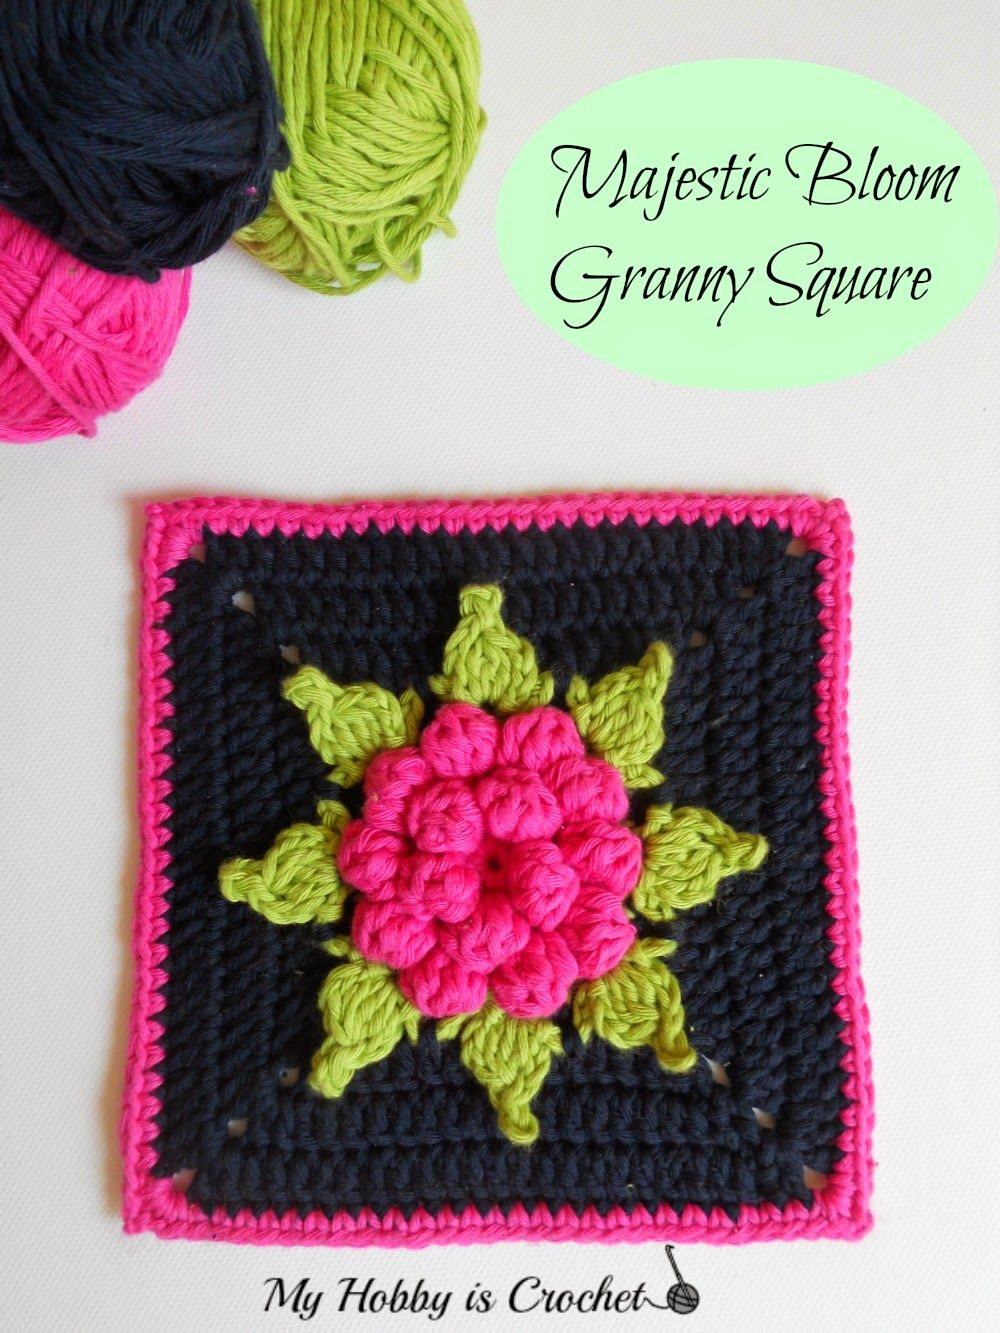 Majestic Bloom Granny Square Free Crochet Pattern with Tutorial ...